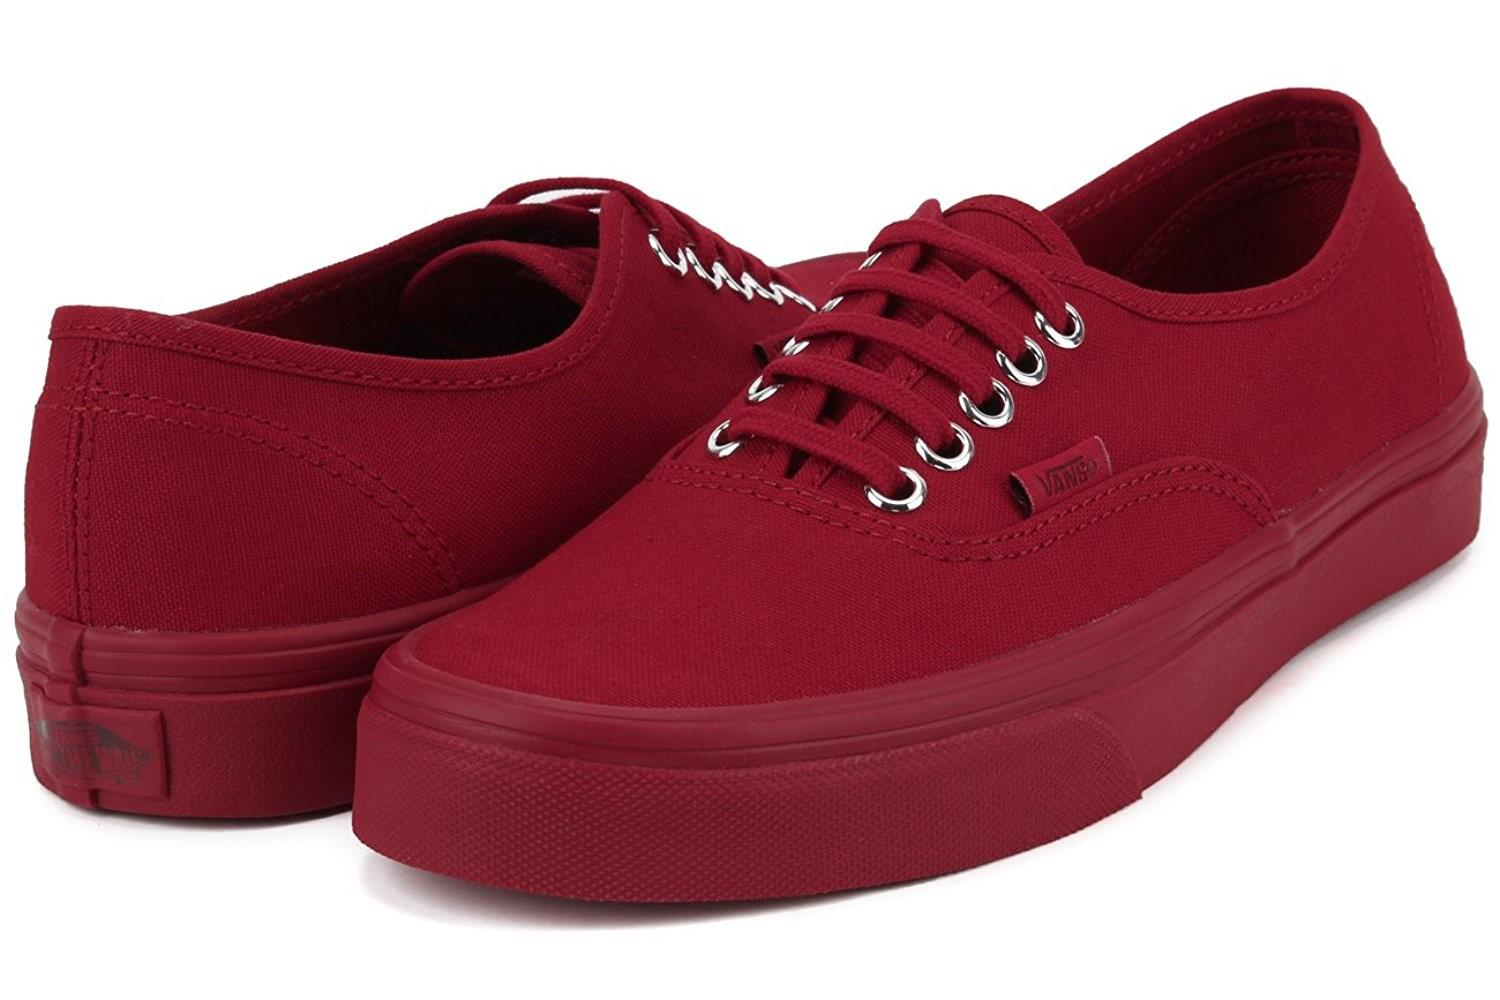 c859f2a4c0 Lyst - Vans Unisex Authentic Primary Mono Skate Shoes-red-13.5-women ...